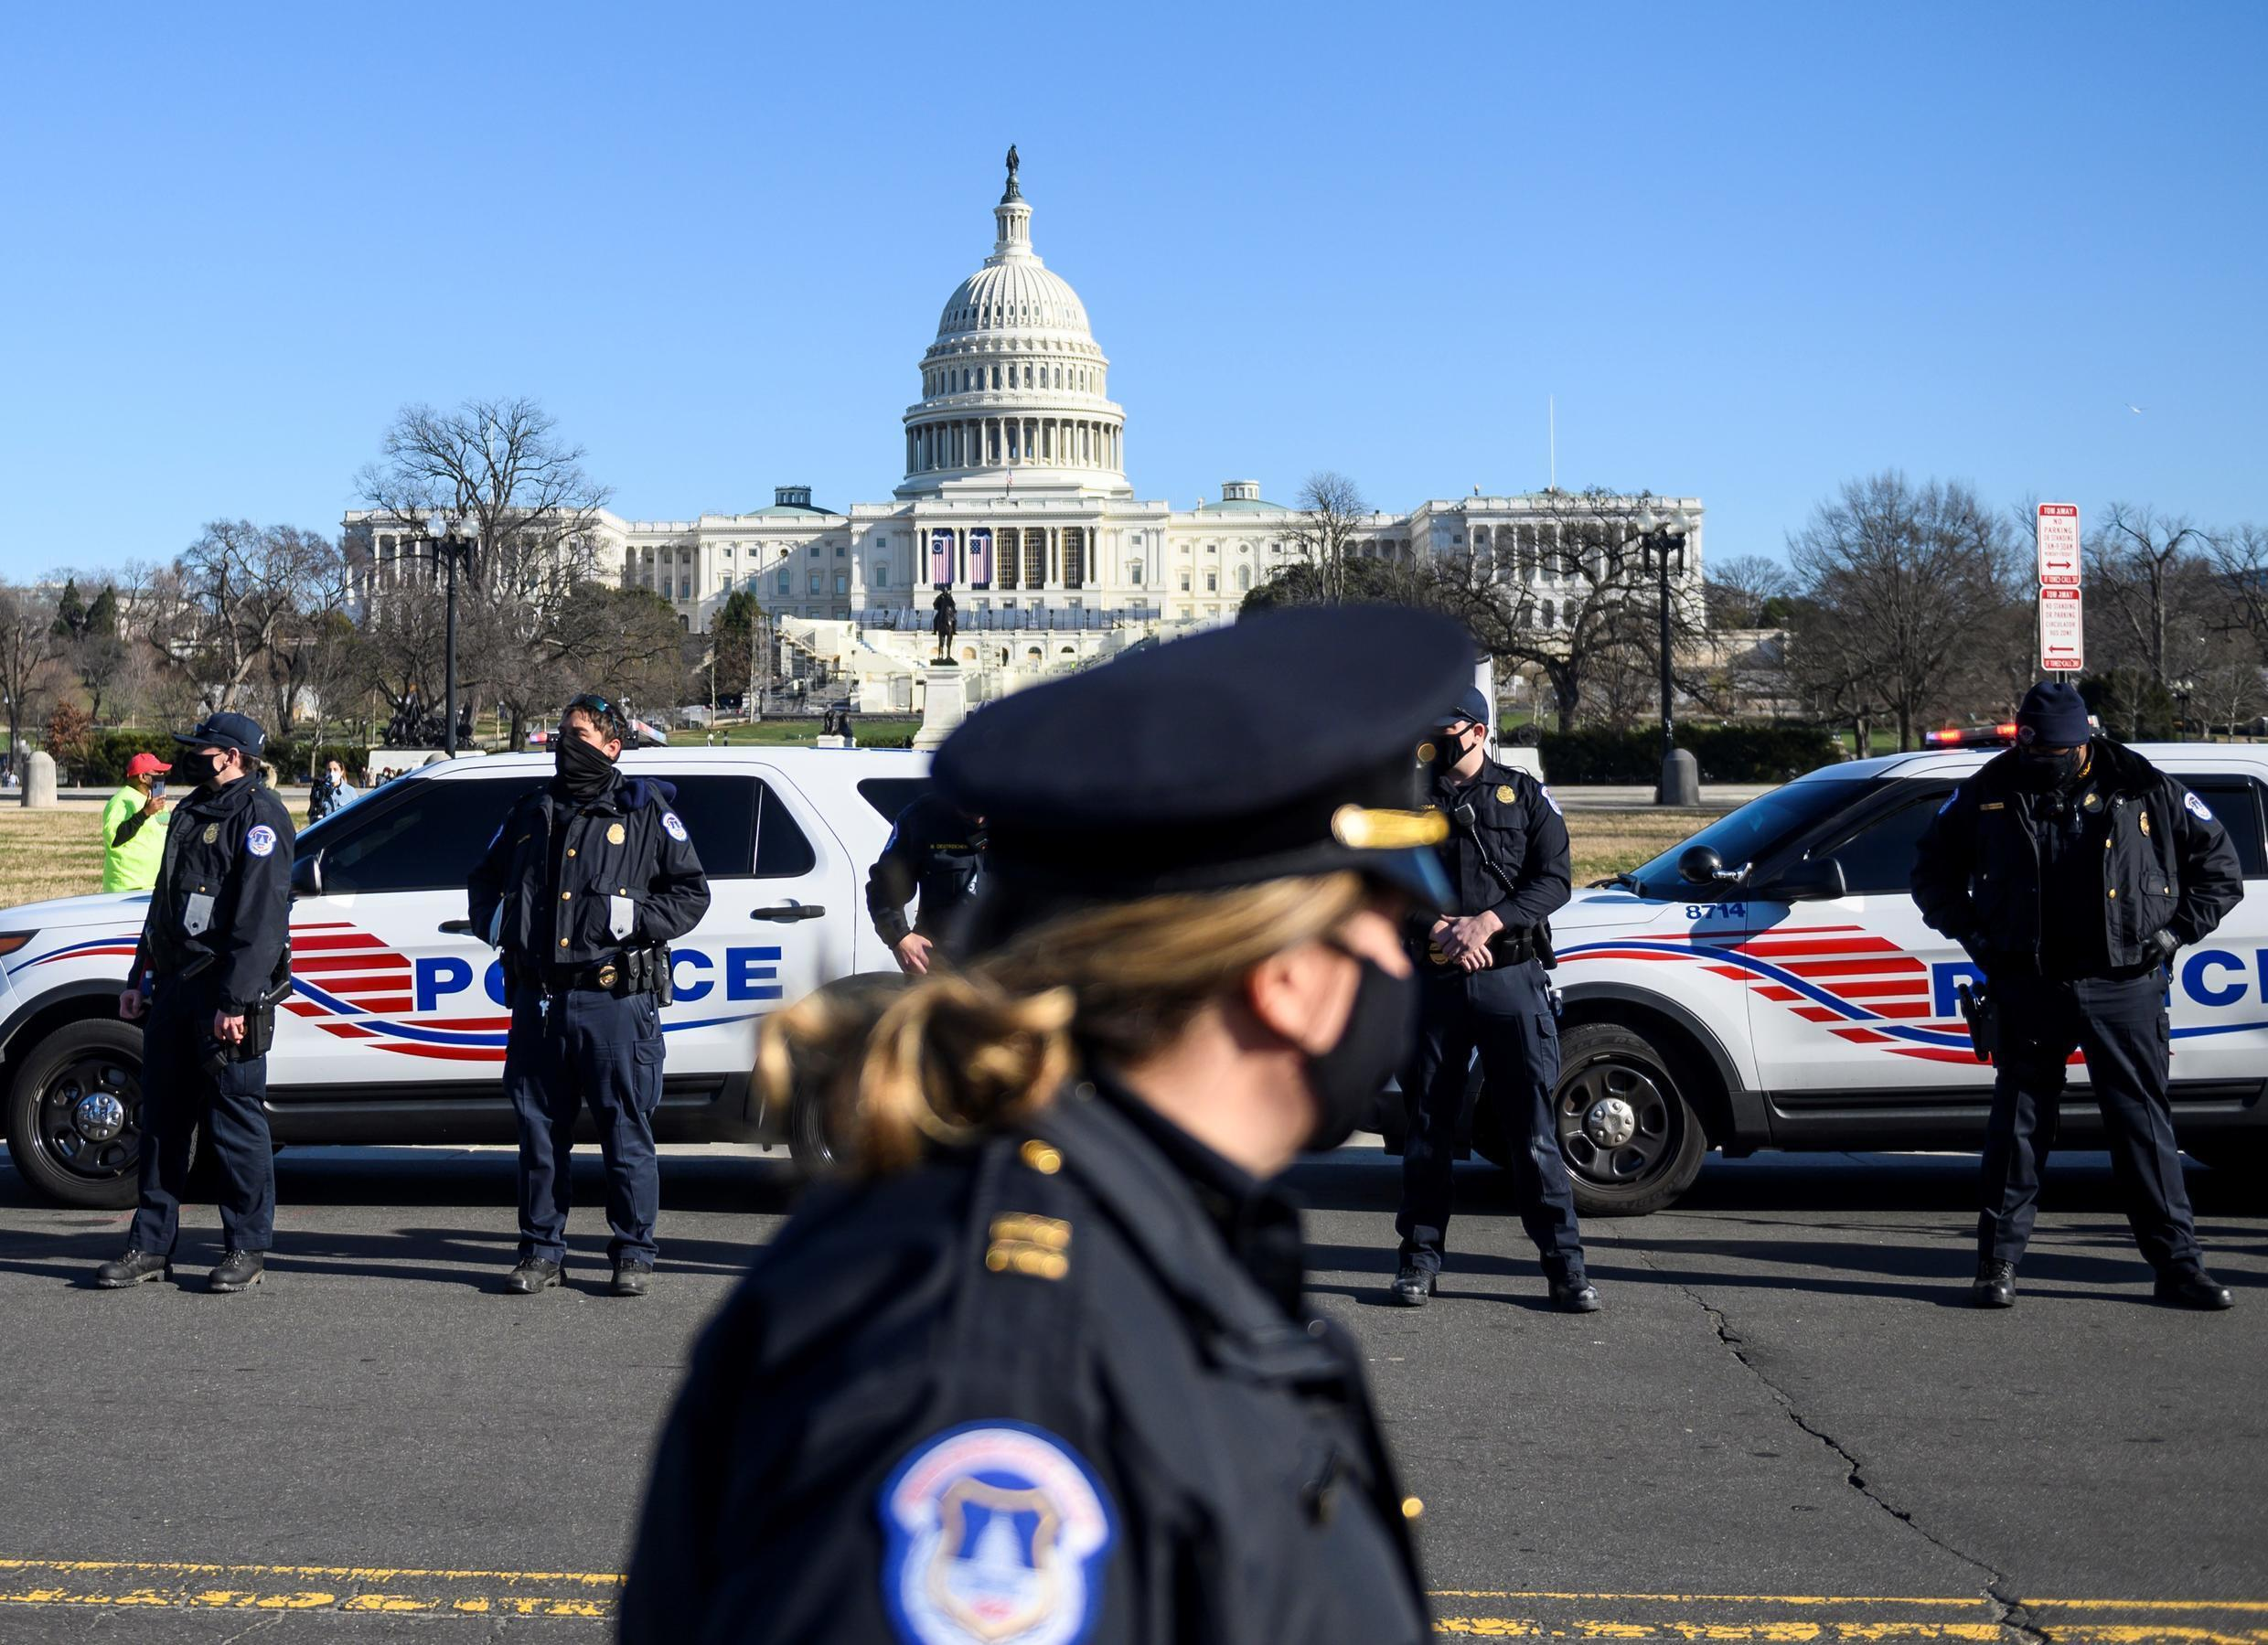 After Donald Trump's supporters last week stormed the Capitol Building, there are fears of fresh unrest in Washington during Joe Biden's inauguration on January 20